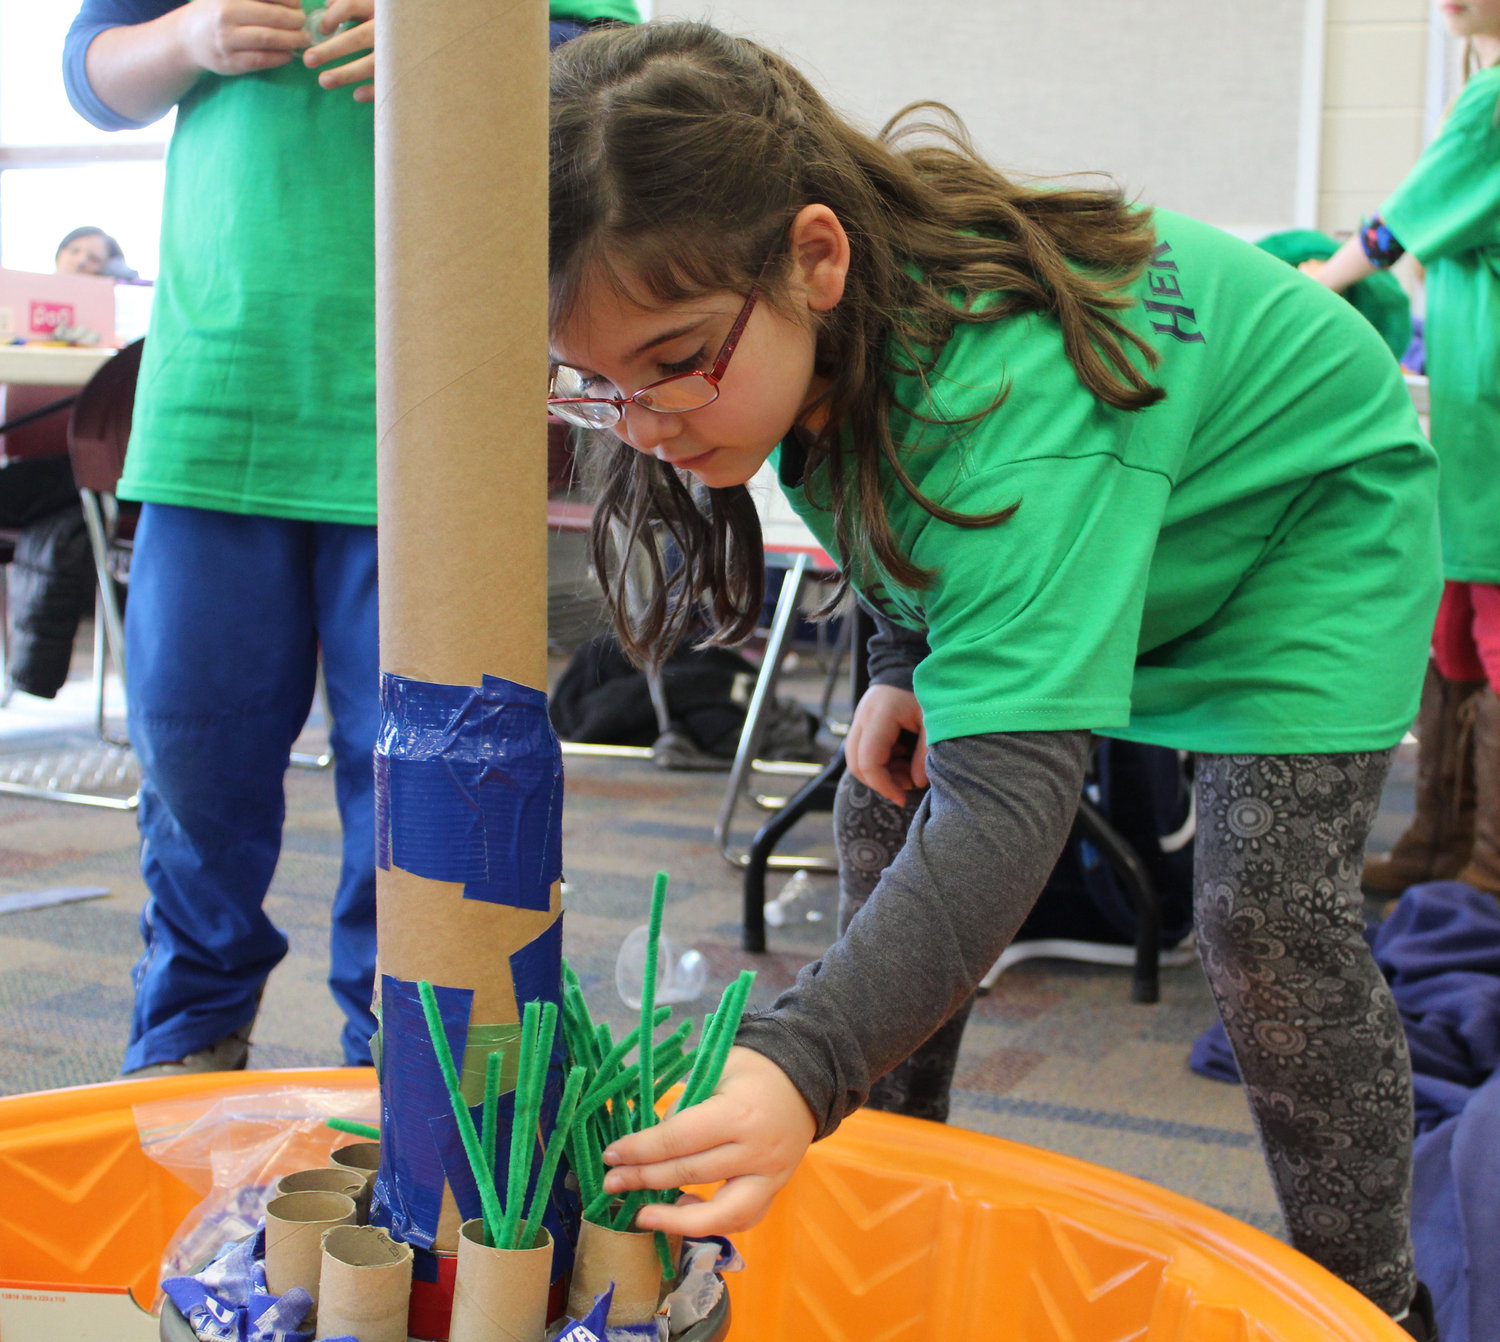 Zoe Handwerk was one of four Middletown fifth-graders who participated in the Challenge Day for gifted students from four area school districts on Nov. 29. The students were challenged to focus on foundation and build a tower that could withstand wind, an earthquake and weight.